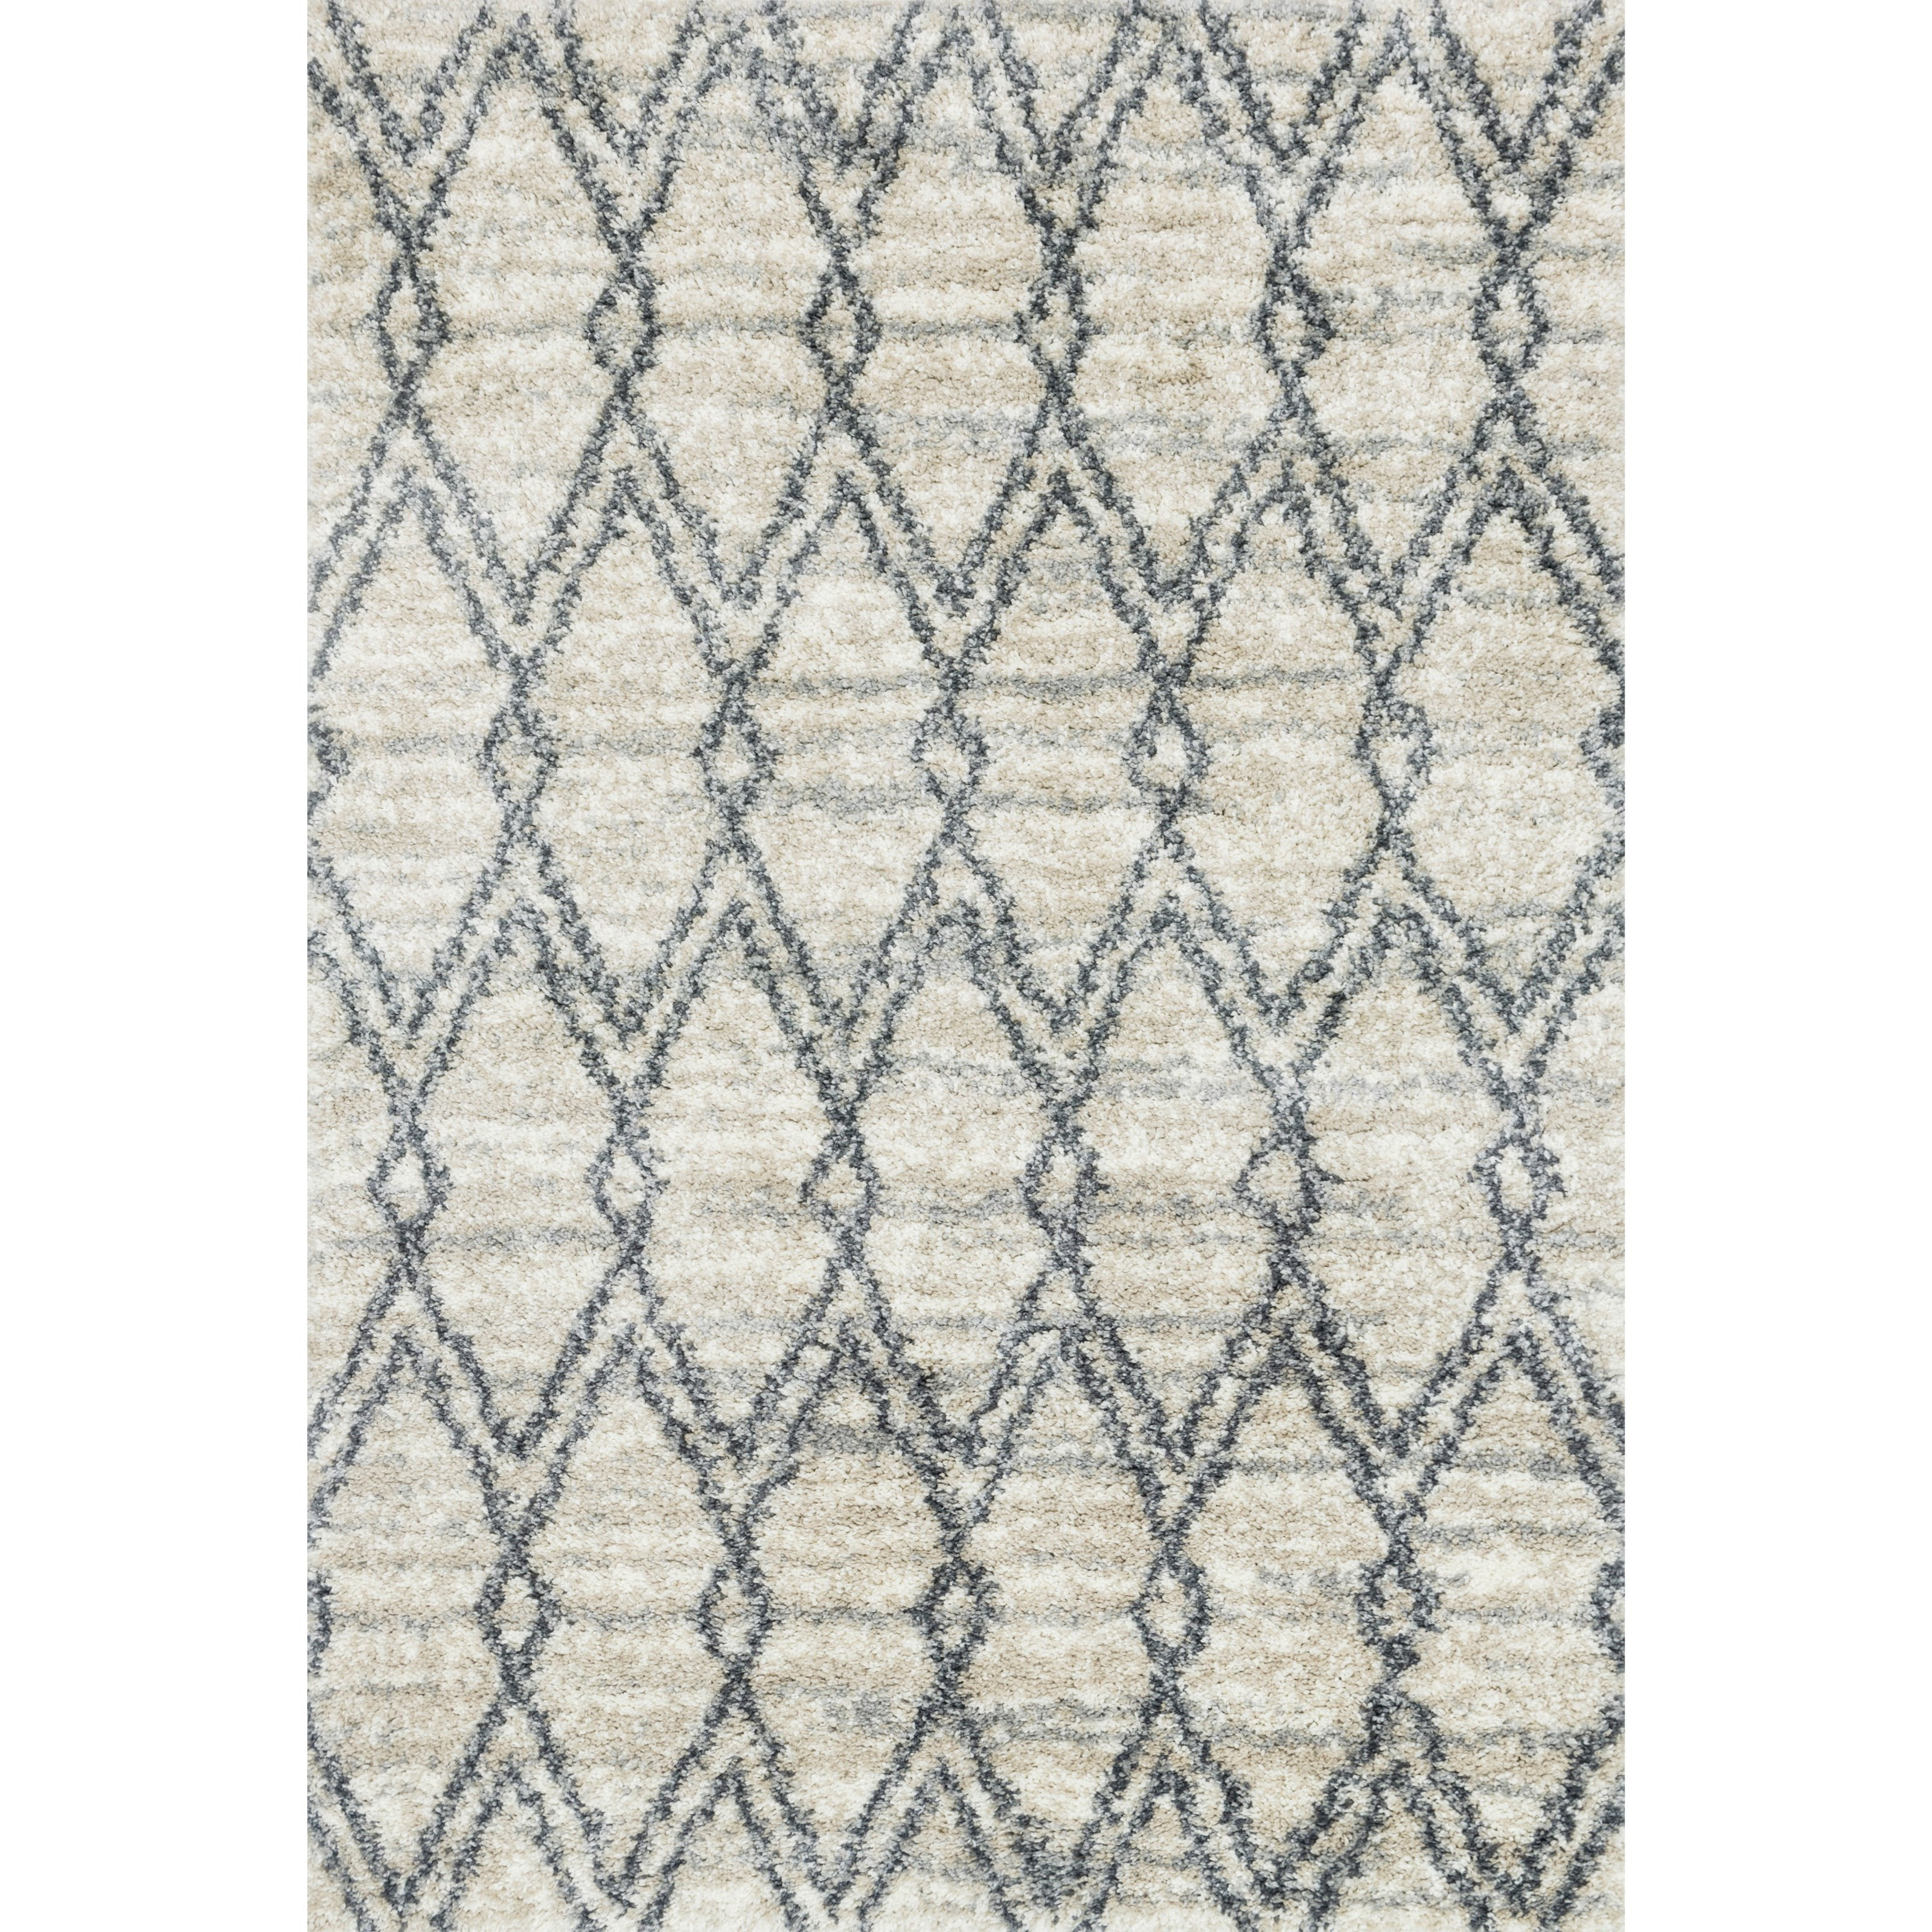 "Quincy 2'3"" x 4'0"" Sand / Graphite Rug by Loloi Rugs at Belfort Furniture"